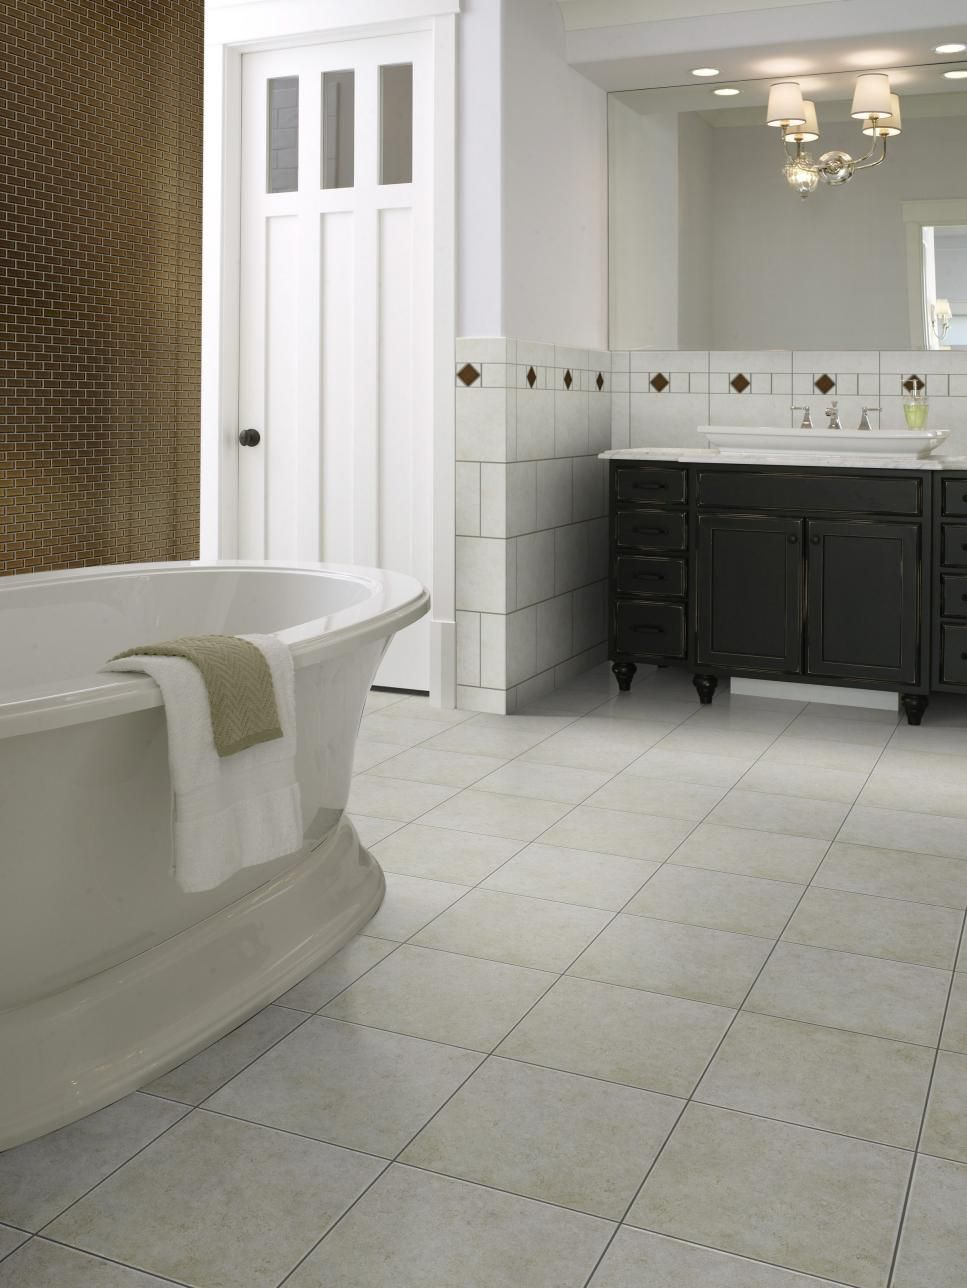 Pictures Of Bathroom Tile - http://viralom.com/081555-pictures-of ...